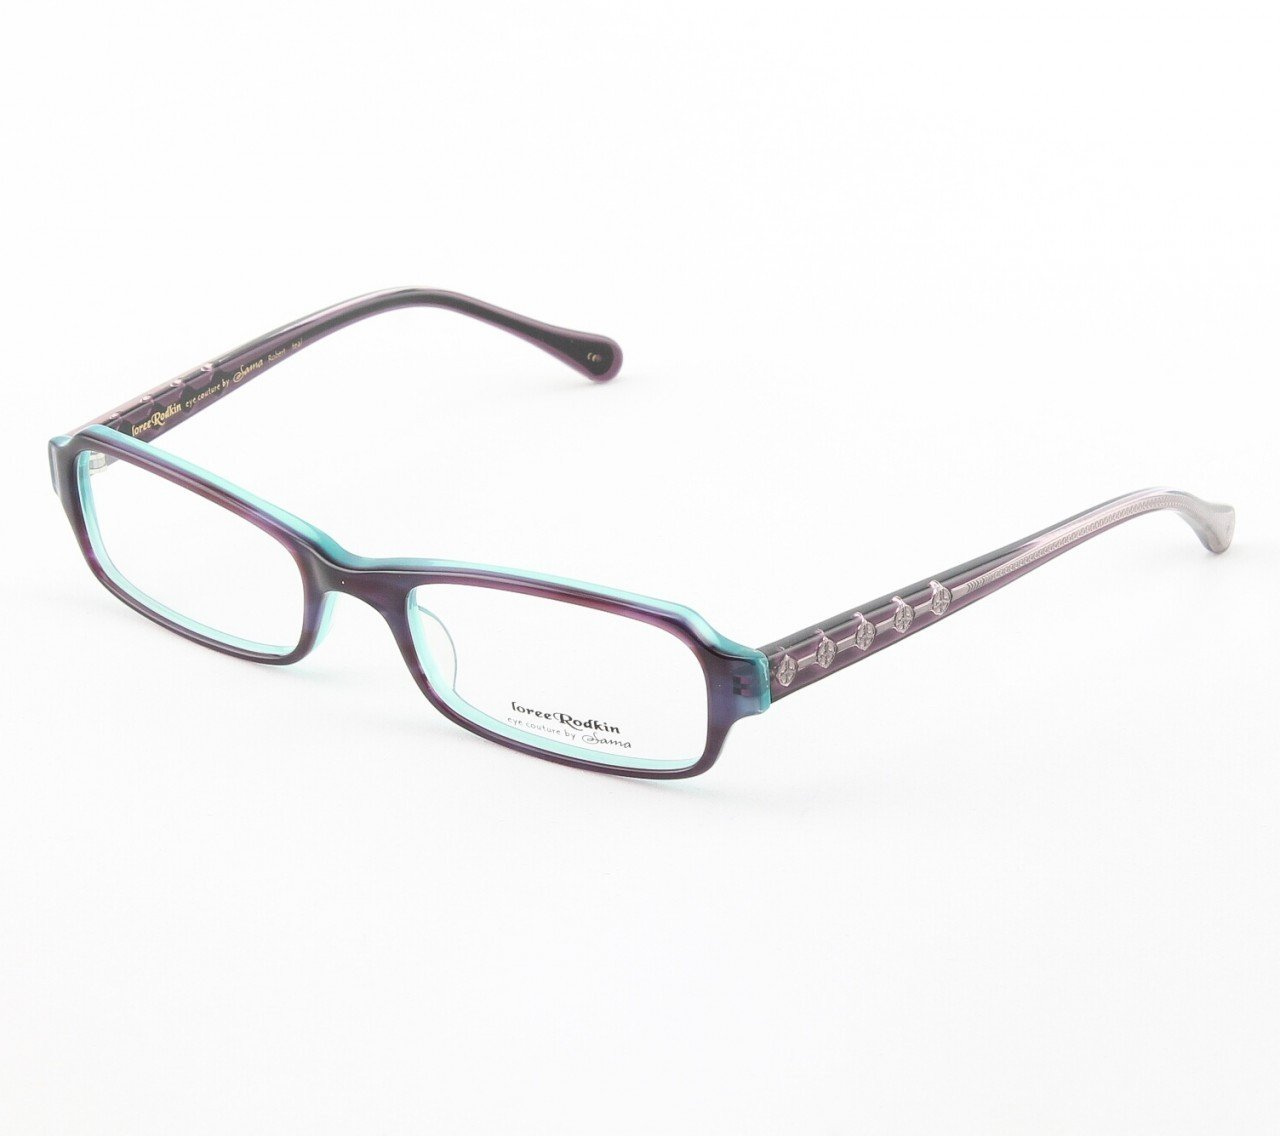 Loree Rodkin Robert Eyeglasses by Sama Col. Teal with Clear Lenses and Decorative Temple Core